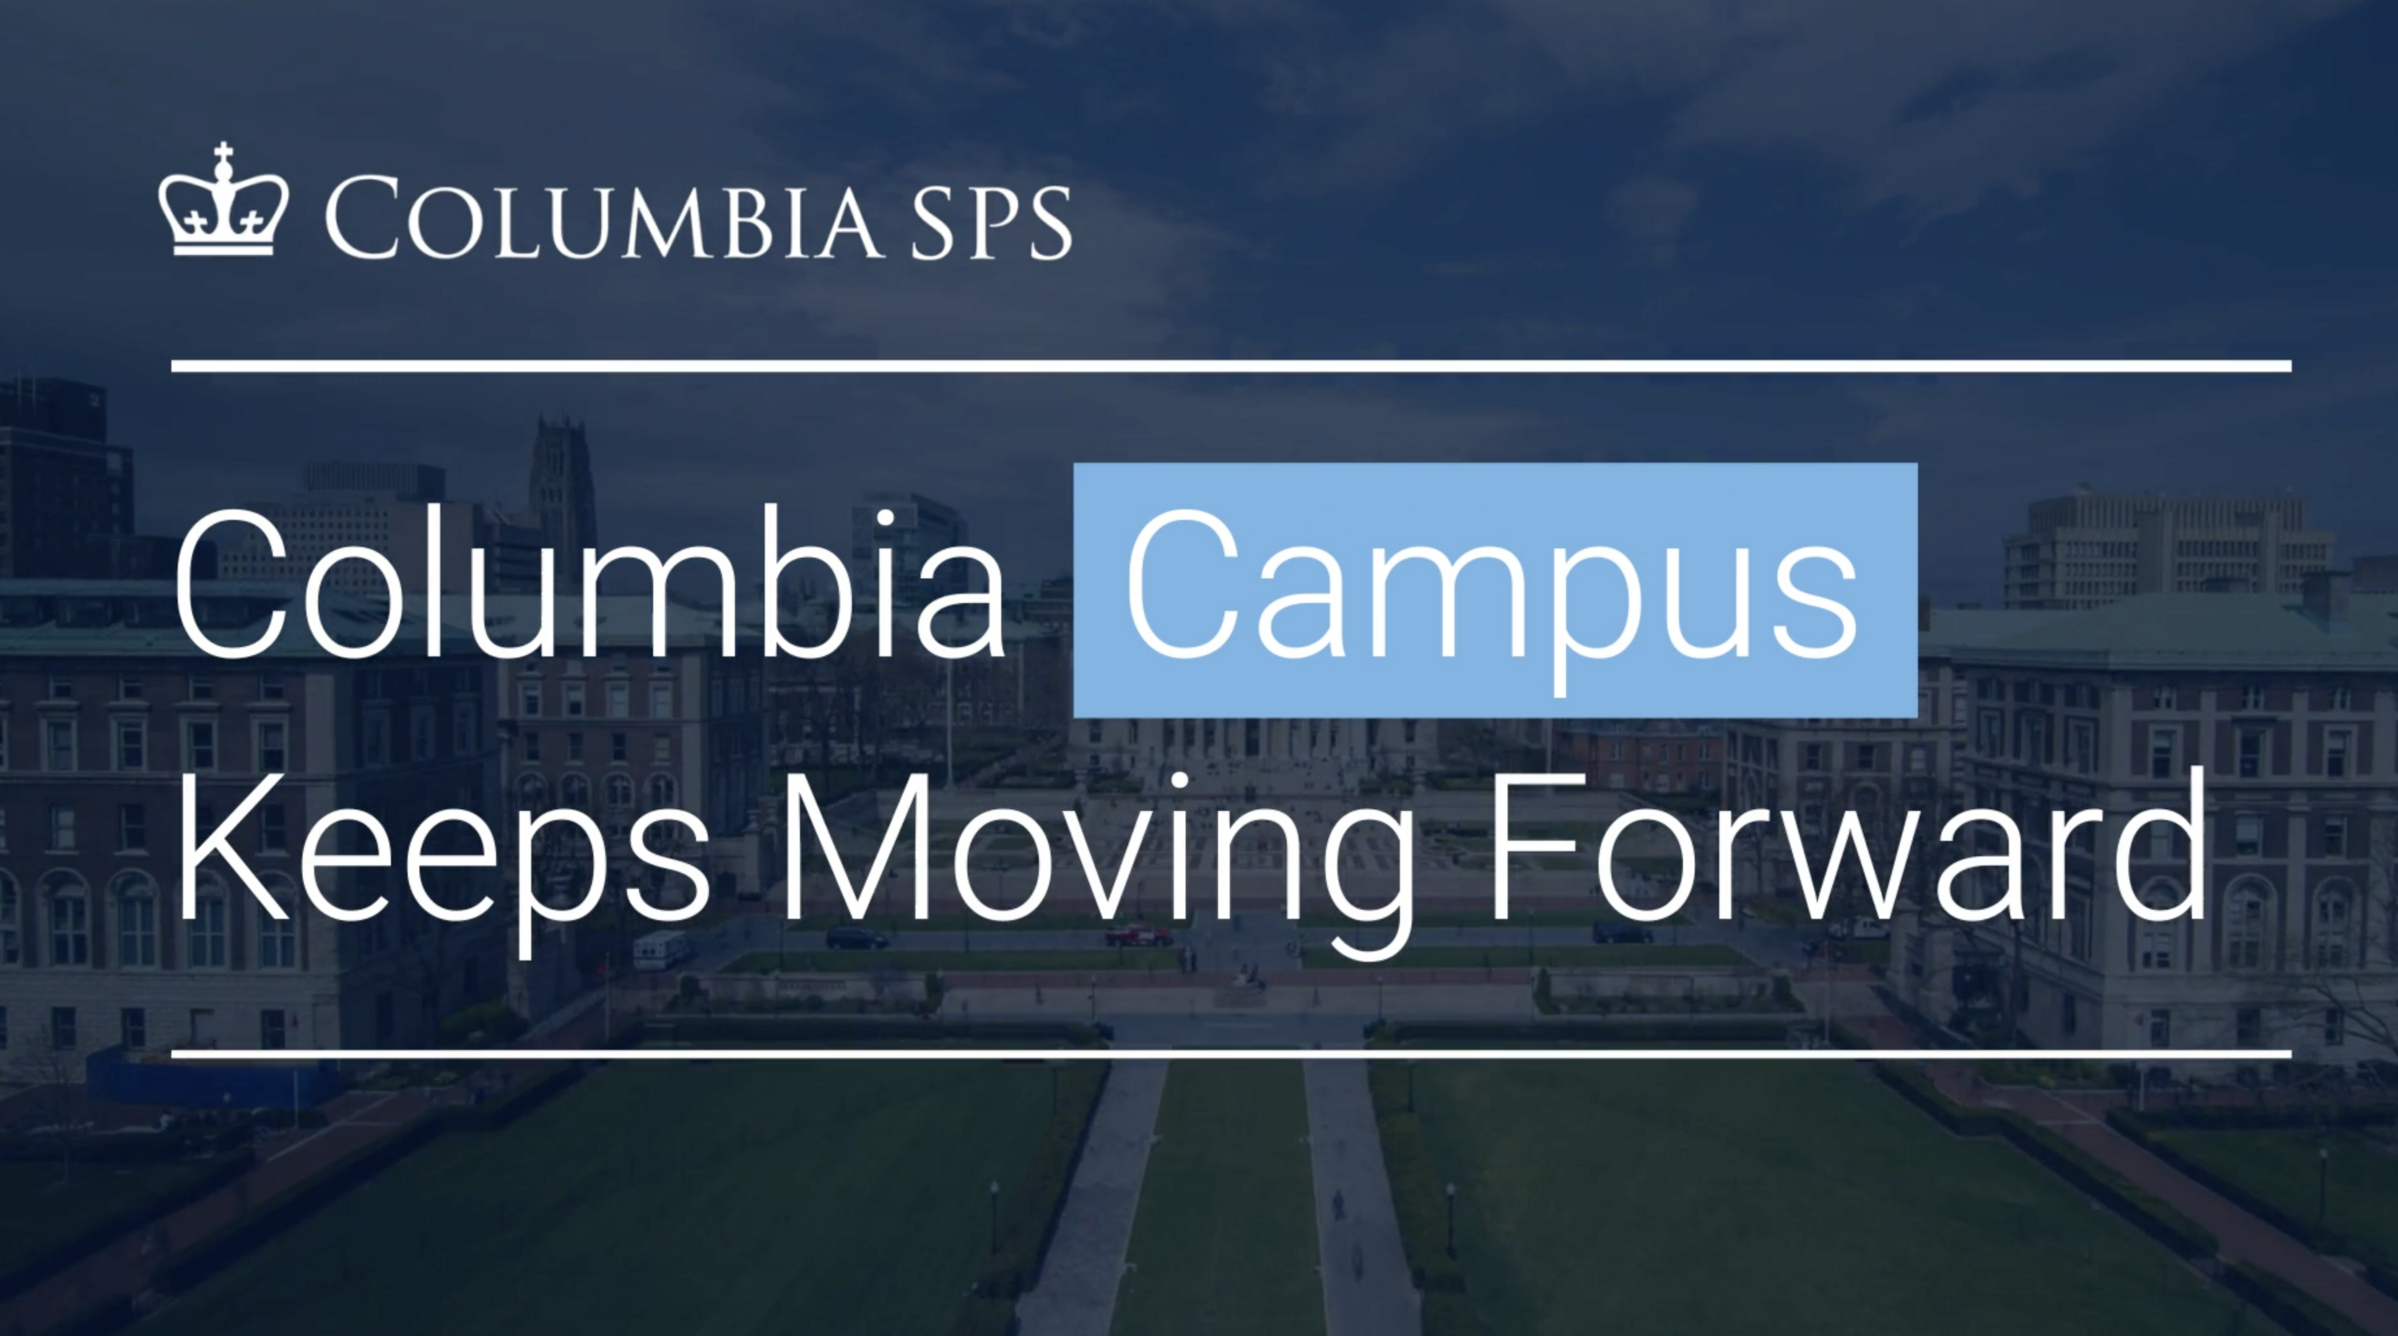 Columbia Keeps Moving Forward